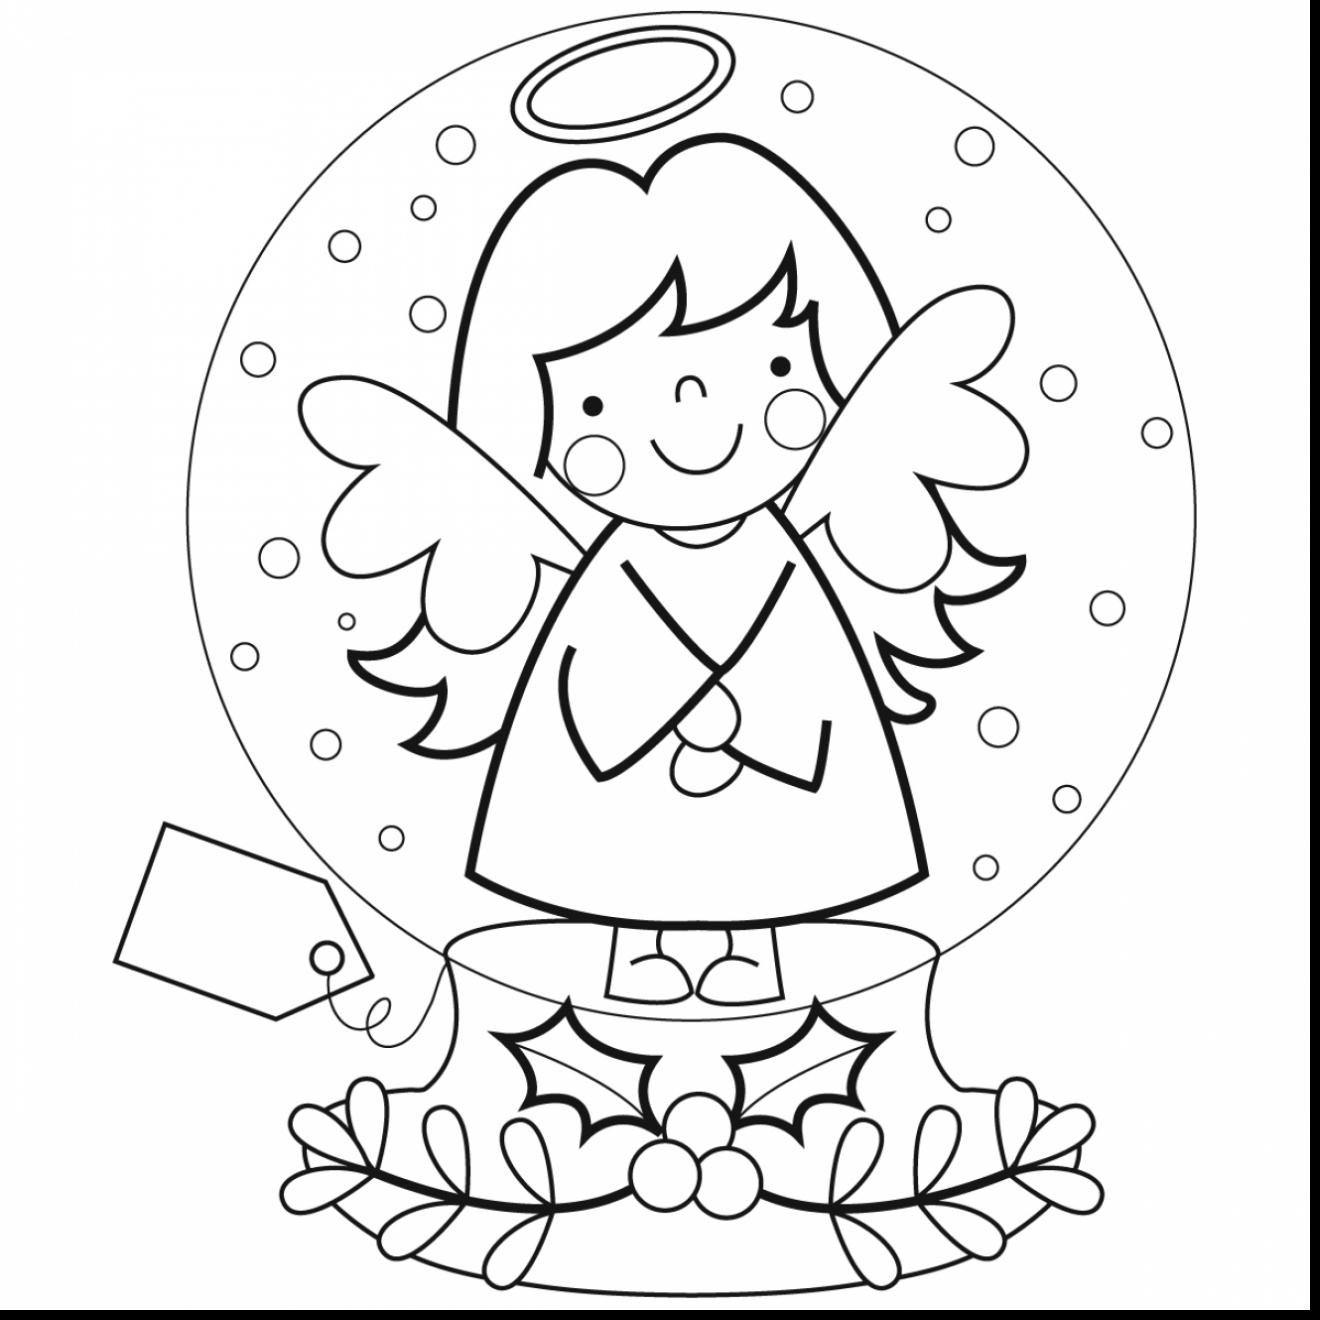 1320x1320 Wonderful Christmas Snow Globes Coloring Pages With Brilliant